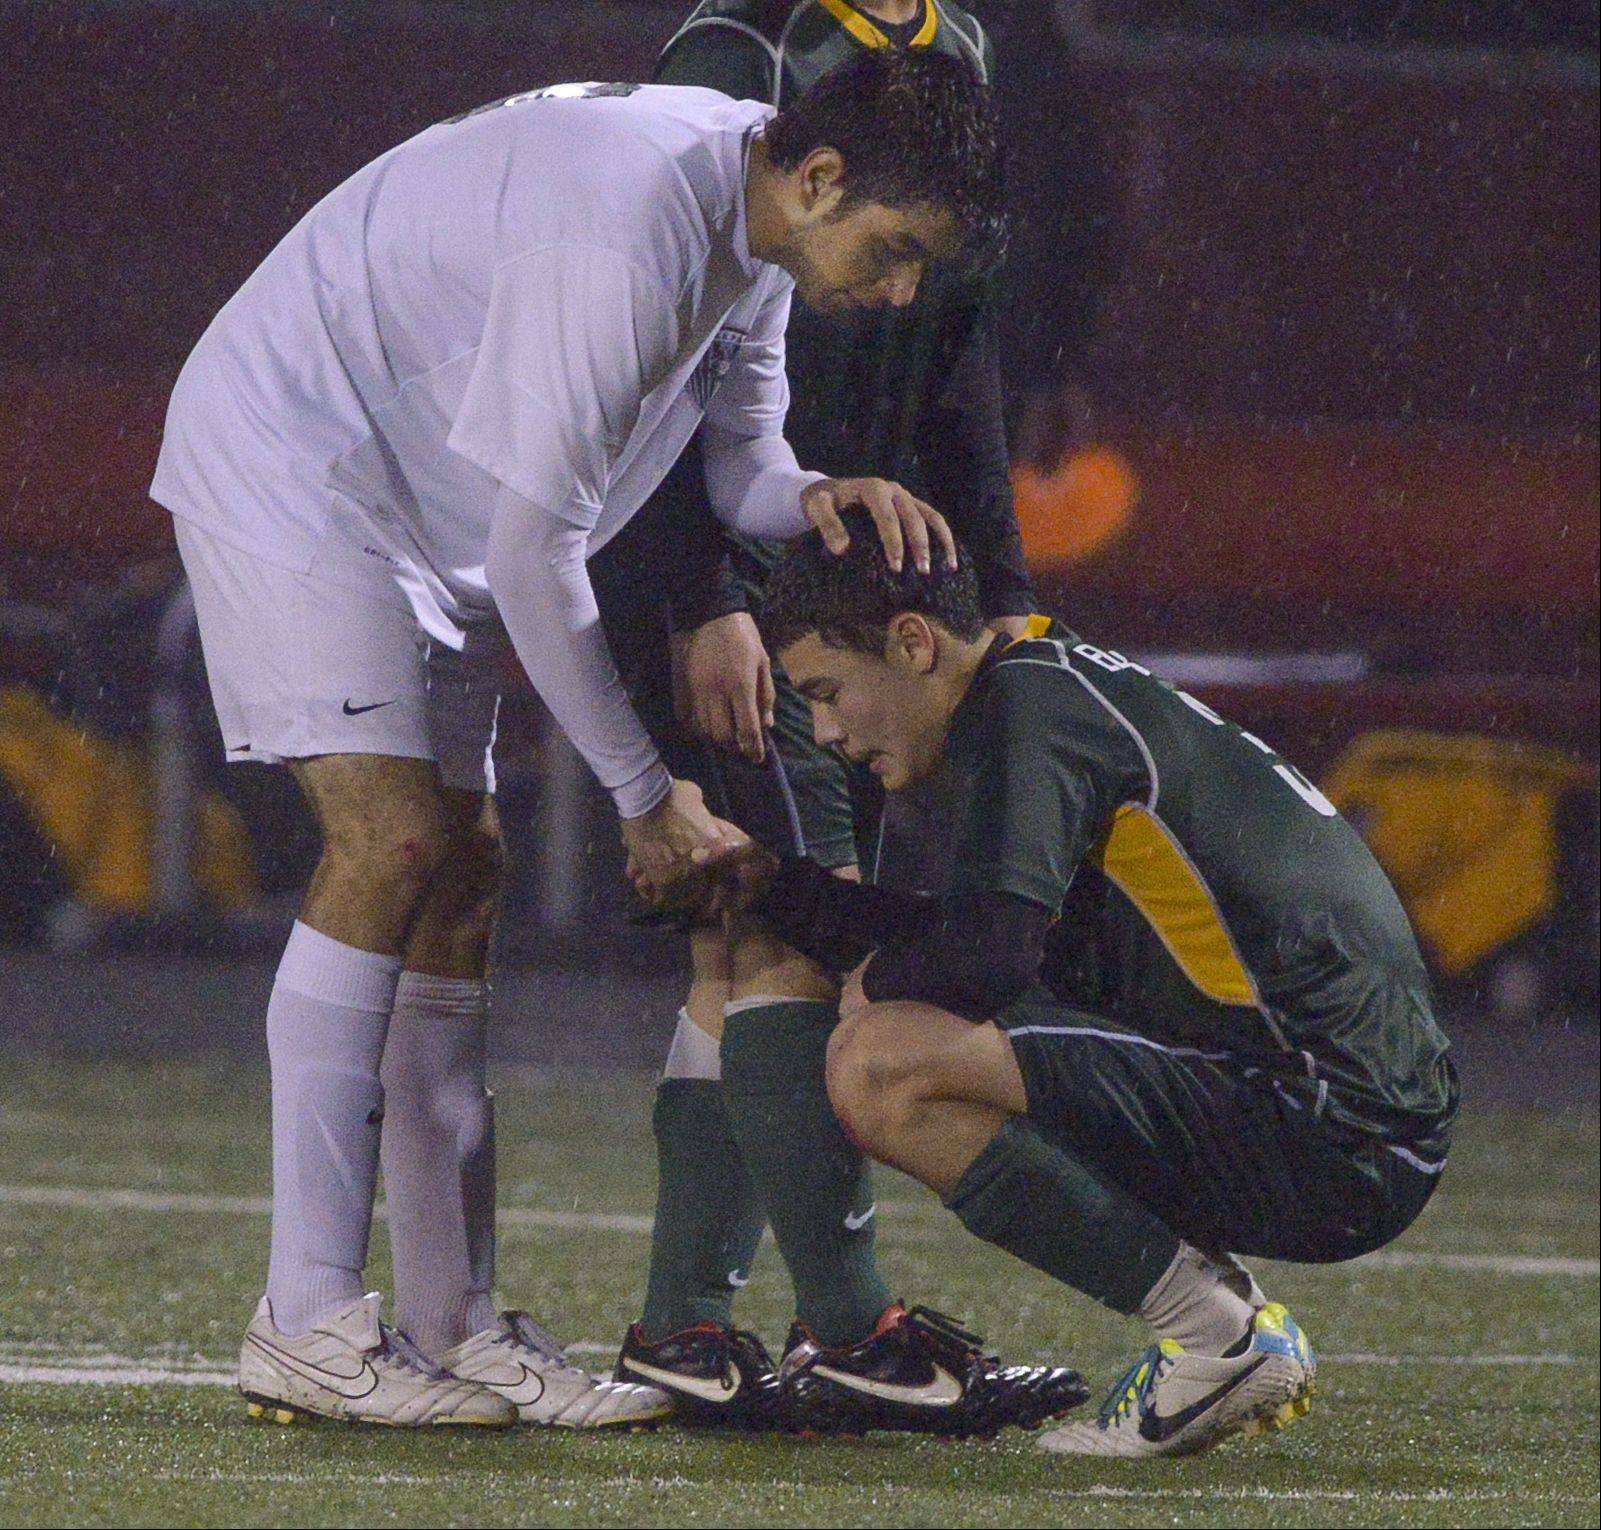 Carlos Torres of Lake Park consoles Ivan Corona of Elk Grove after Lake Park defeated Elk Grove 2-0 during the Class 3A Schaumburg sectional semifinals Wednesday.